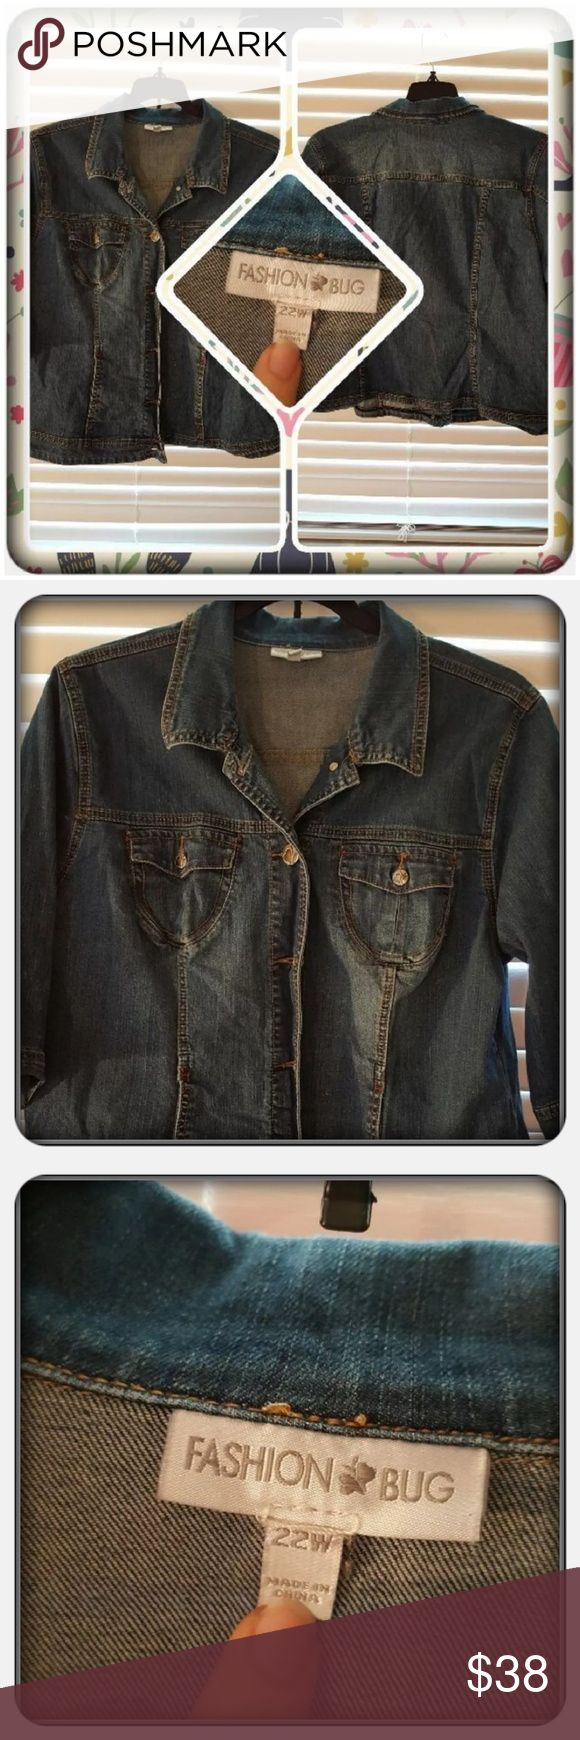 EUC Woman's Denim Jean Jacket Size 22W Woman's Denim Jean Jacket Size 22W From Fashion Bug. This Super Cute Jacket Has Buttons Down The Front And On The Cuffs. I Would Say This Fits Alot Smaller Then What Tag Says More Like A Extra Large Or Large It's Snug On Me. I'm Selling For A Friend 🚫 PAYPAL 🚫 TRADES 🚫 OFFERS PRICE IS FIRM ❤ Fashion Bug Jackets & Coats Jean Jackets